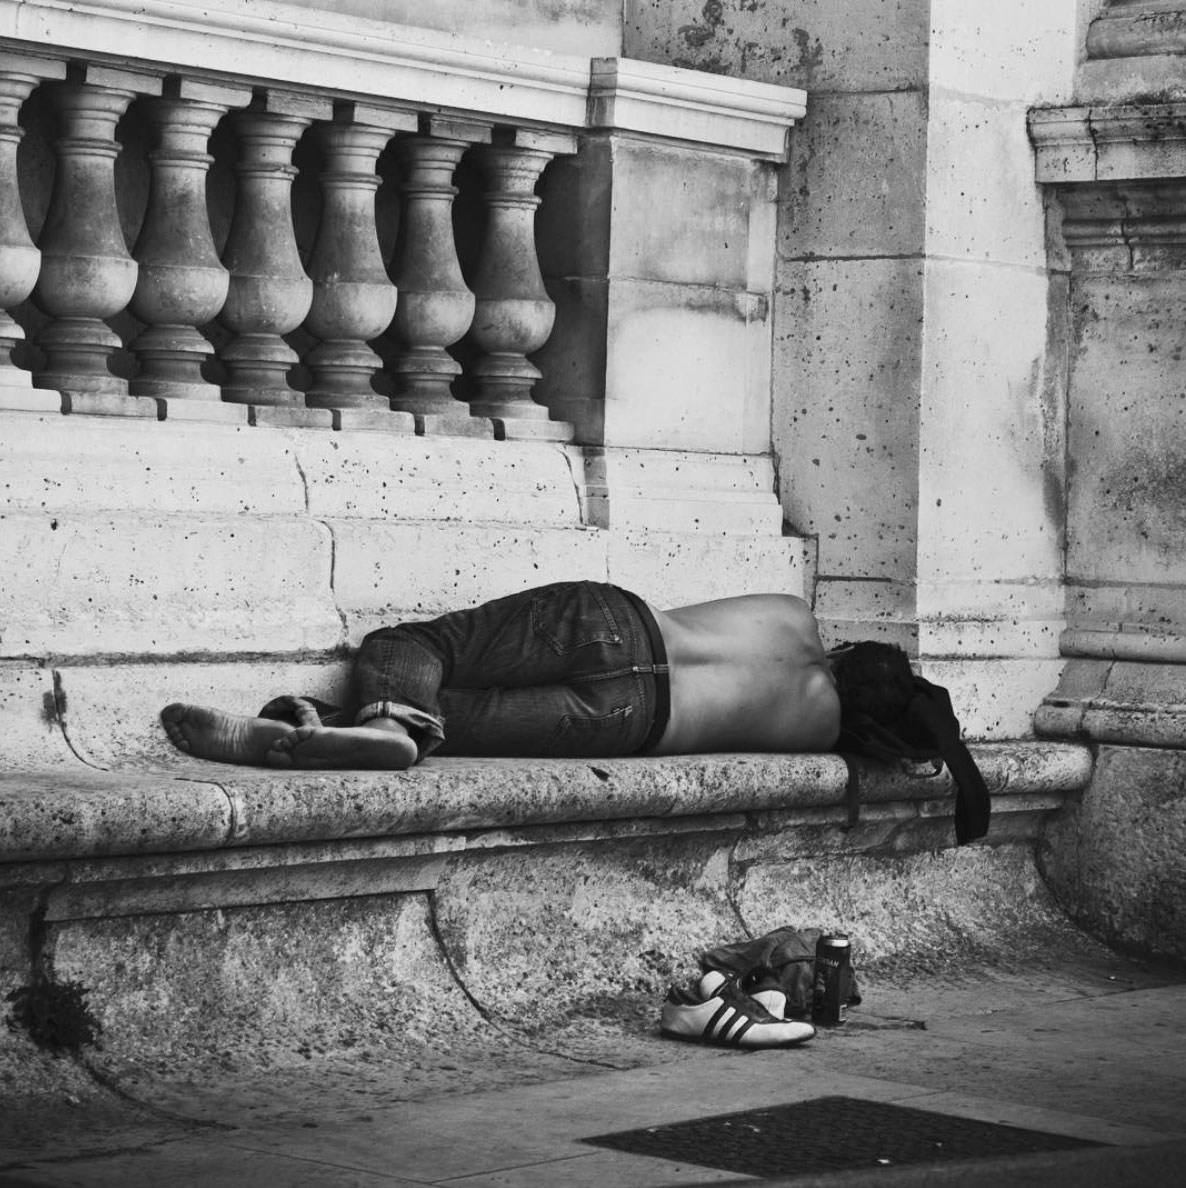 Homeless sleeping in front of the Louvre in Paris, France